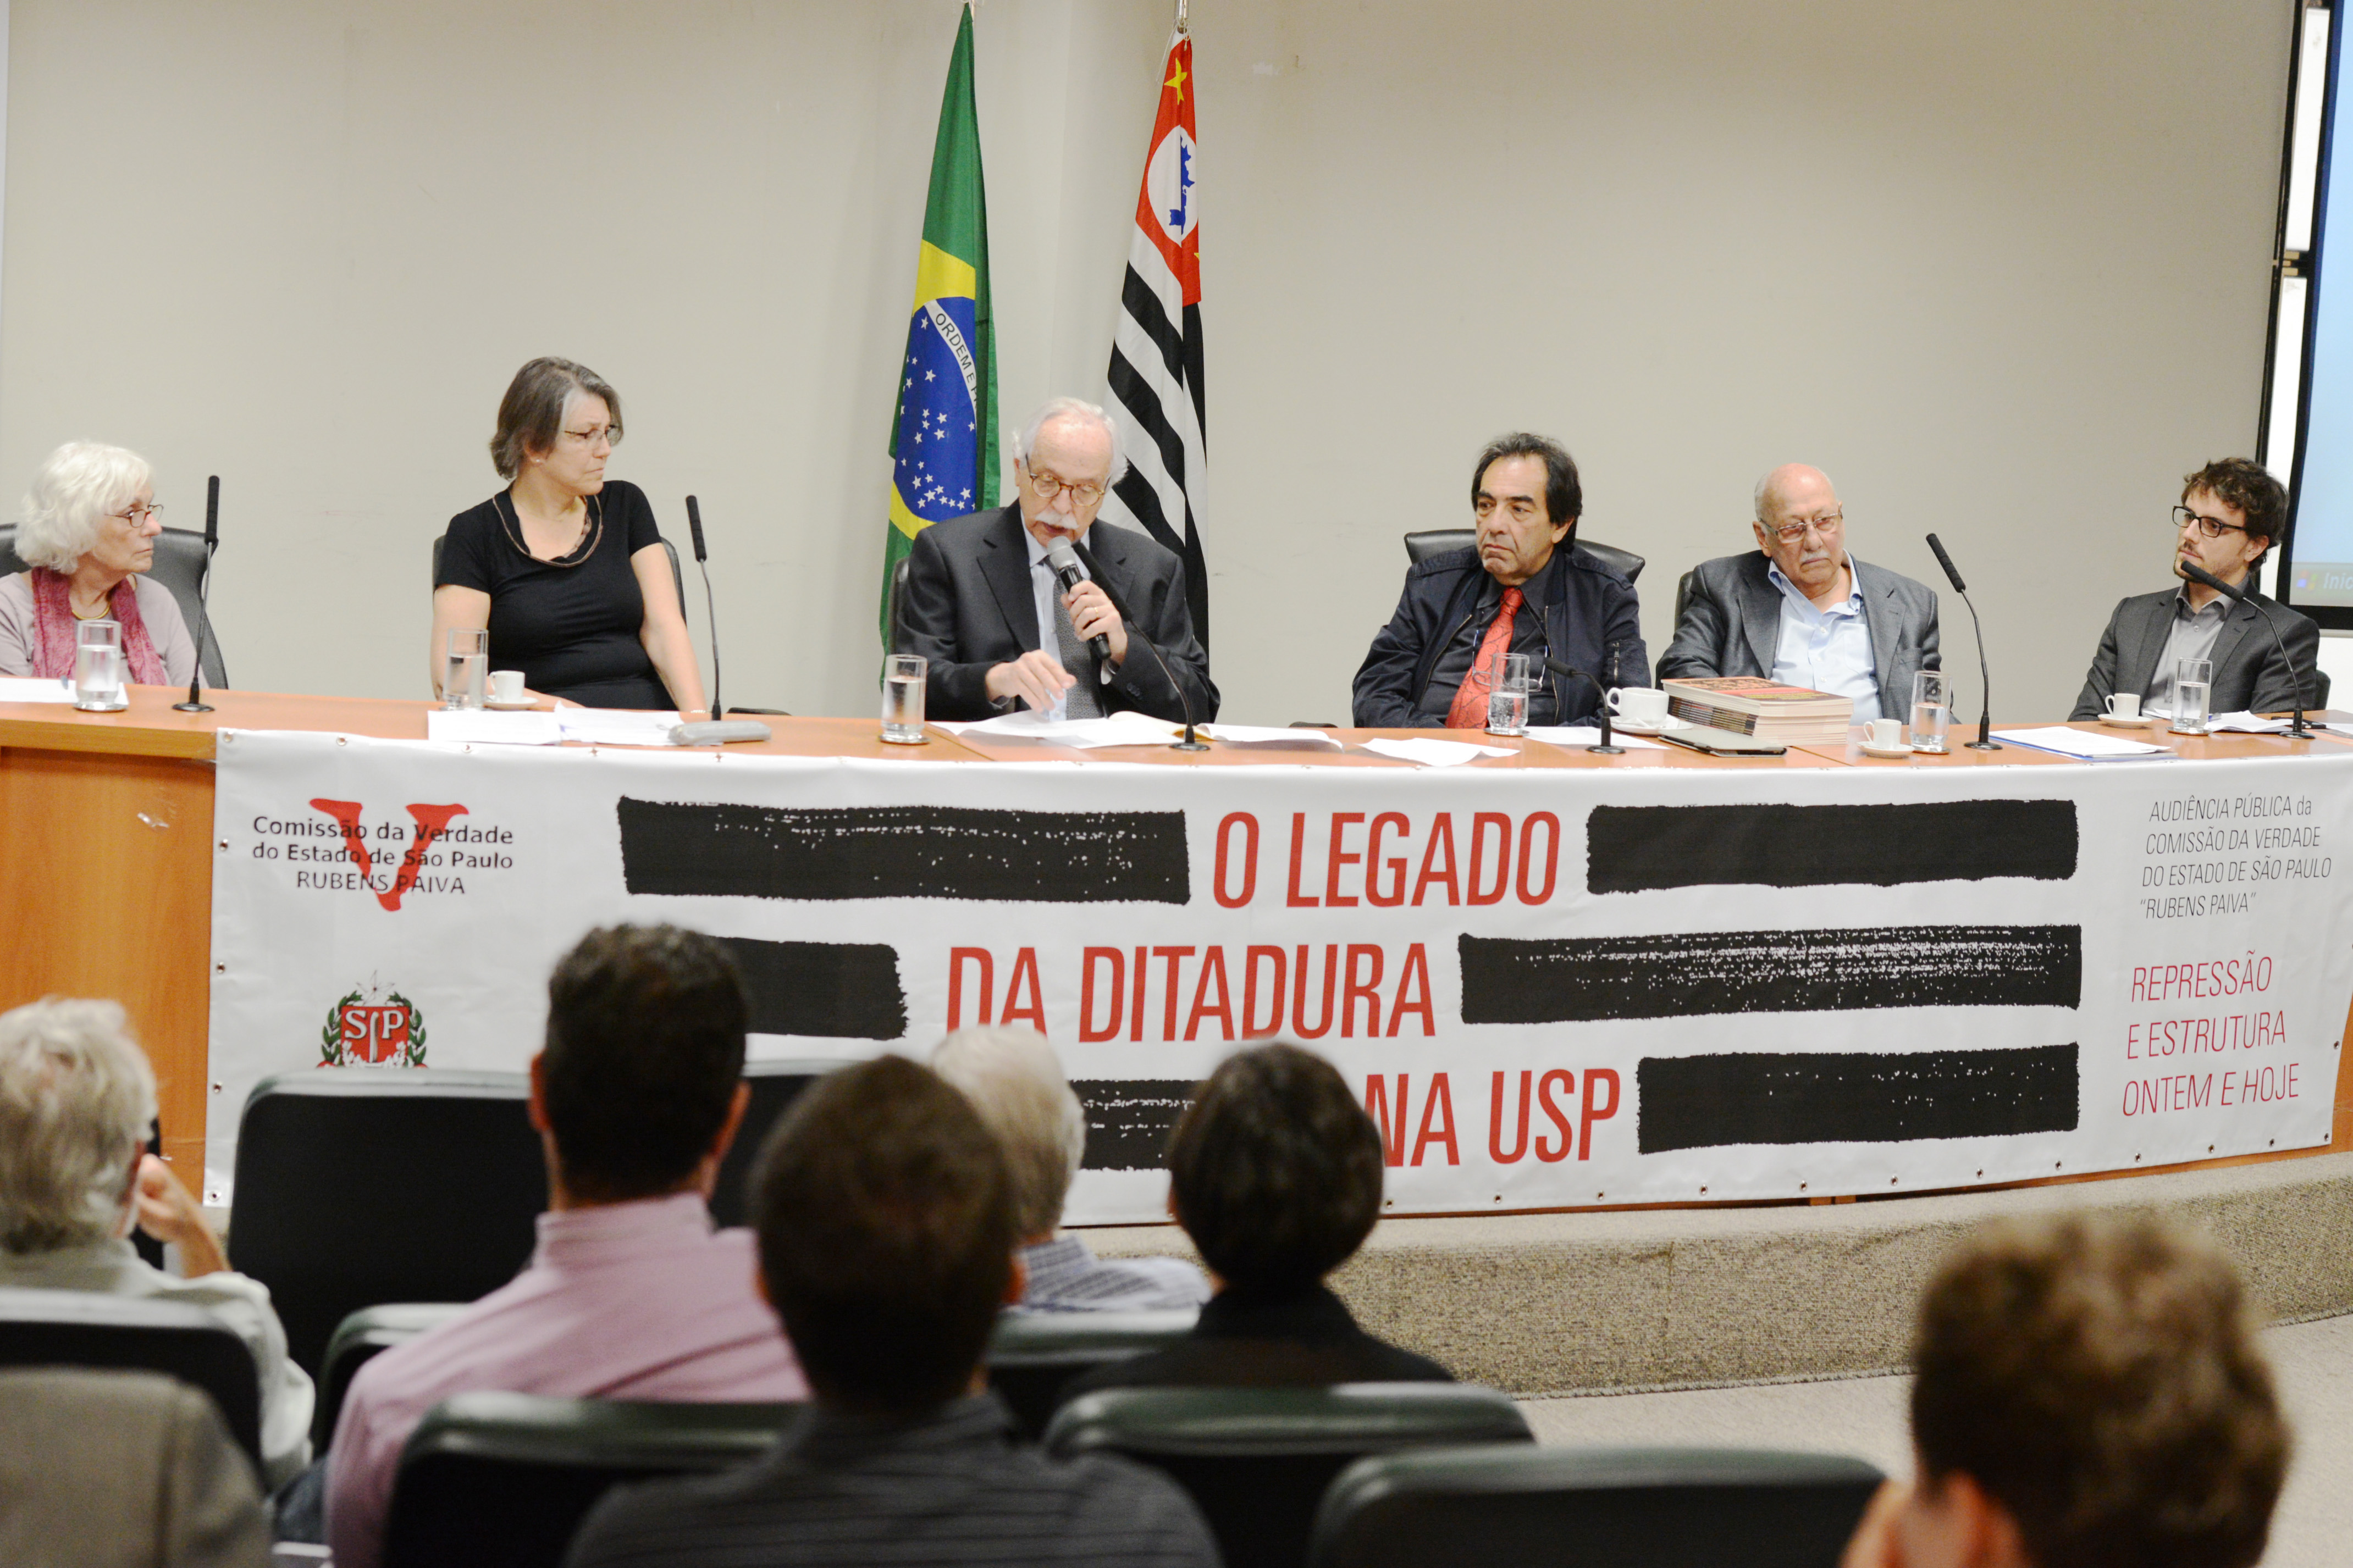 Bia Pardi, Janice Theodoro, Modesto Carvalhosa, Adriano Diogo, Walter Colli e Renan Quinalhia <a style='float:right' href='https://www3.al.sp.gov.br/repositorio/noticia/N-09-2014/fg164994.jpg' target=_blank><img src='/_img/material-file-download-white.png' width='14px' alt='Clique para baixar a imagem'></a>